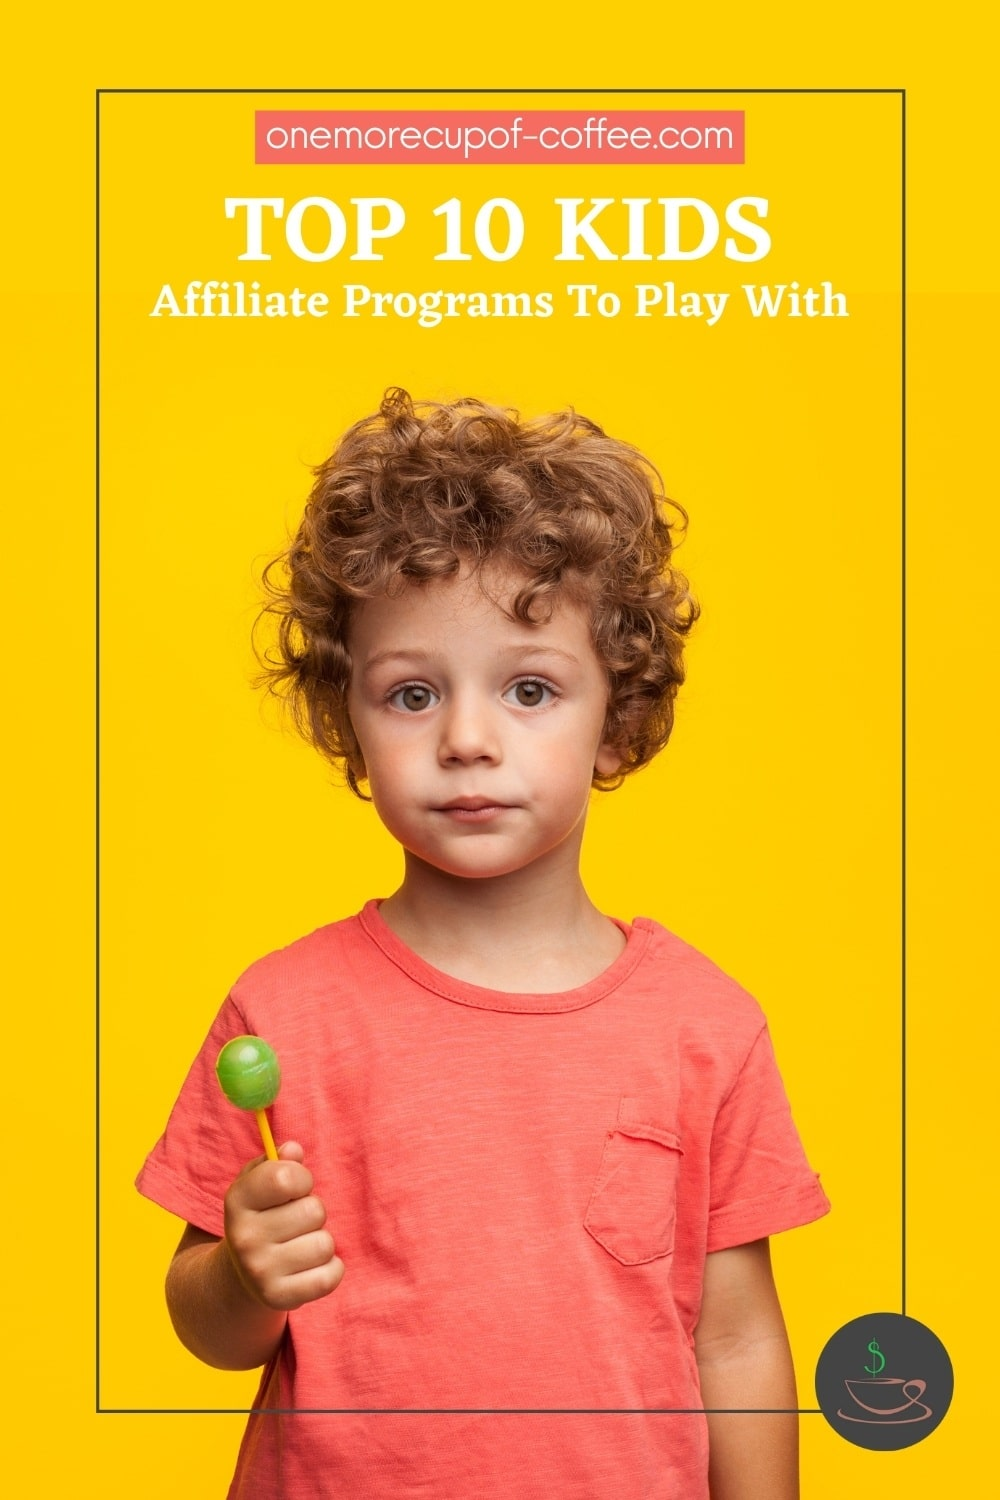 """image of a curly boy against a yellow background, in coral t-shirt, holding a green lollipop; with text overlay """"Top 10 Kids Affiliate Programs To Play With"""""""